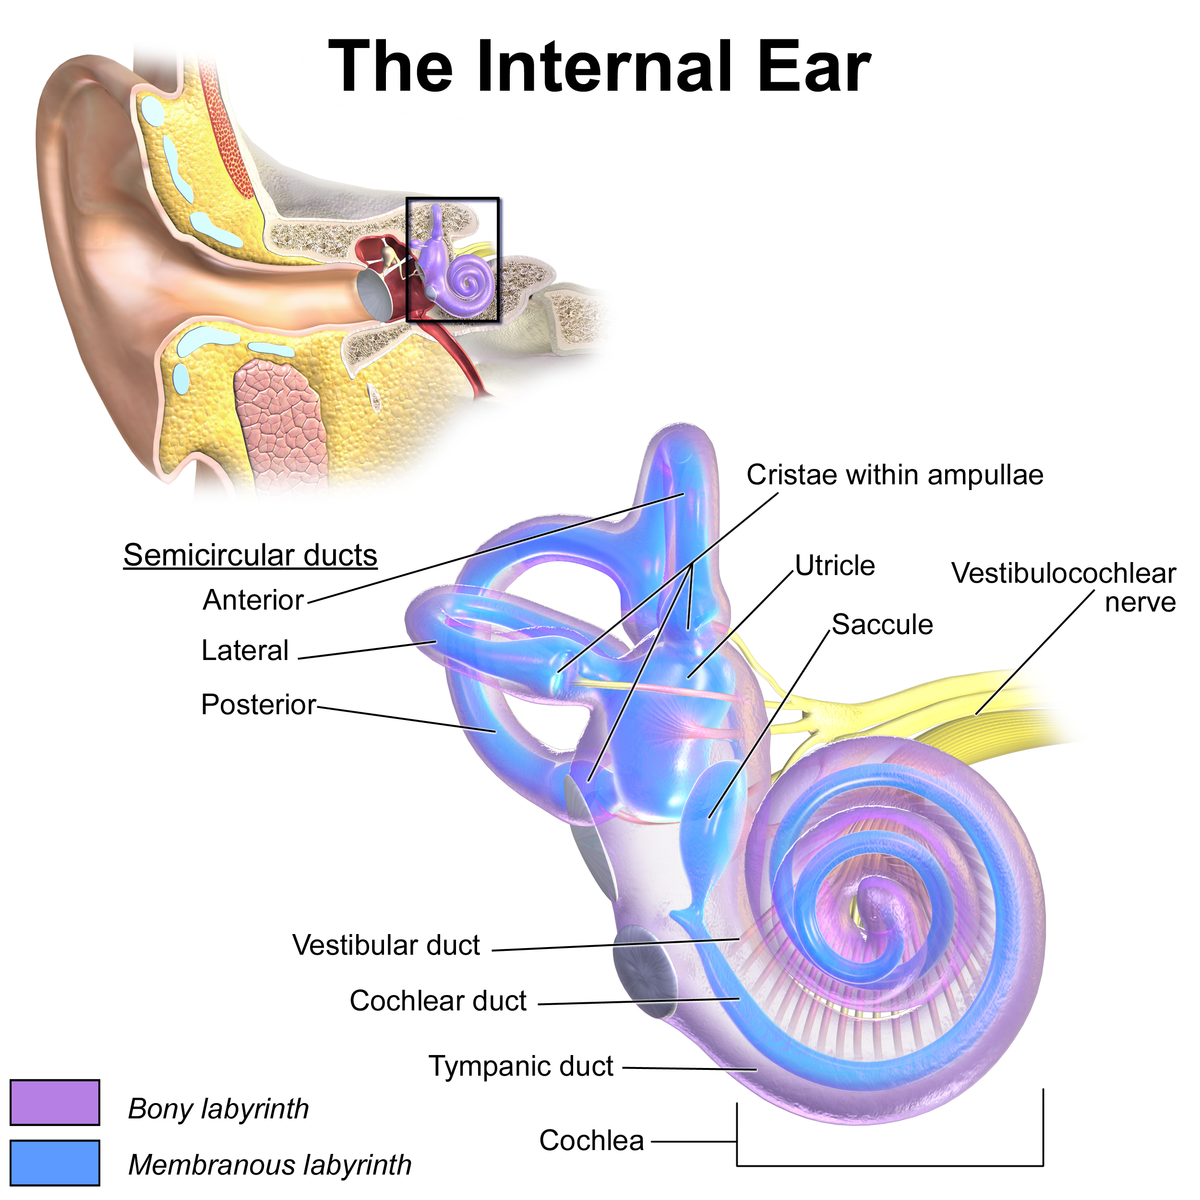 Anatomy of inner ear